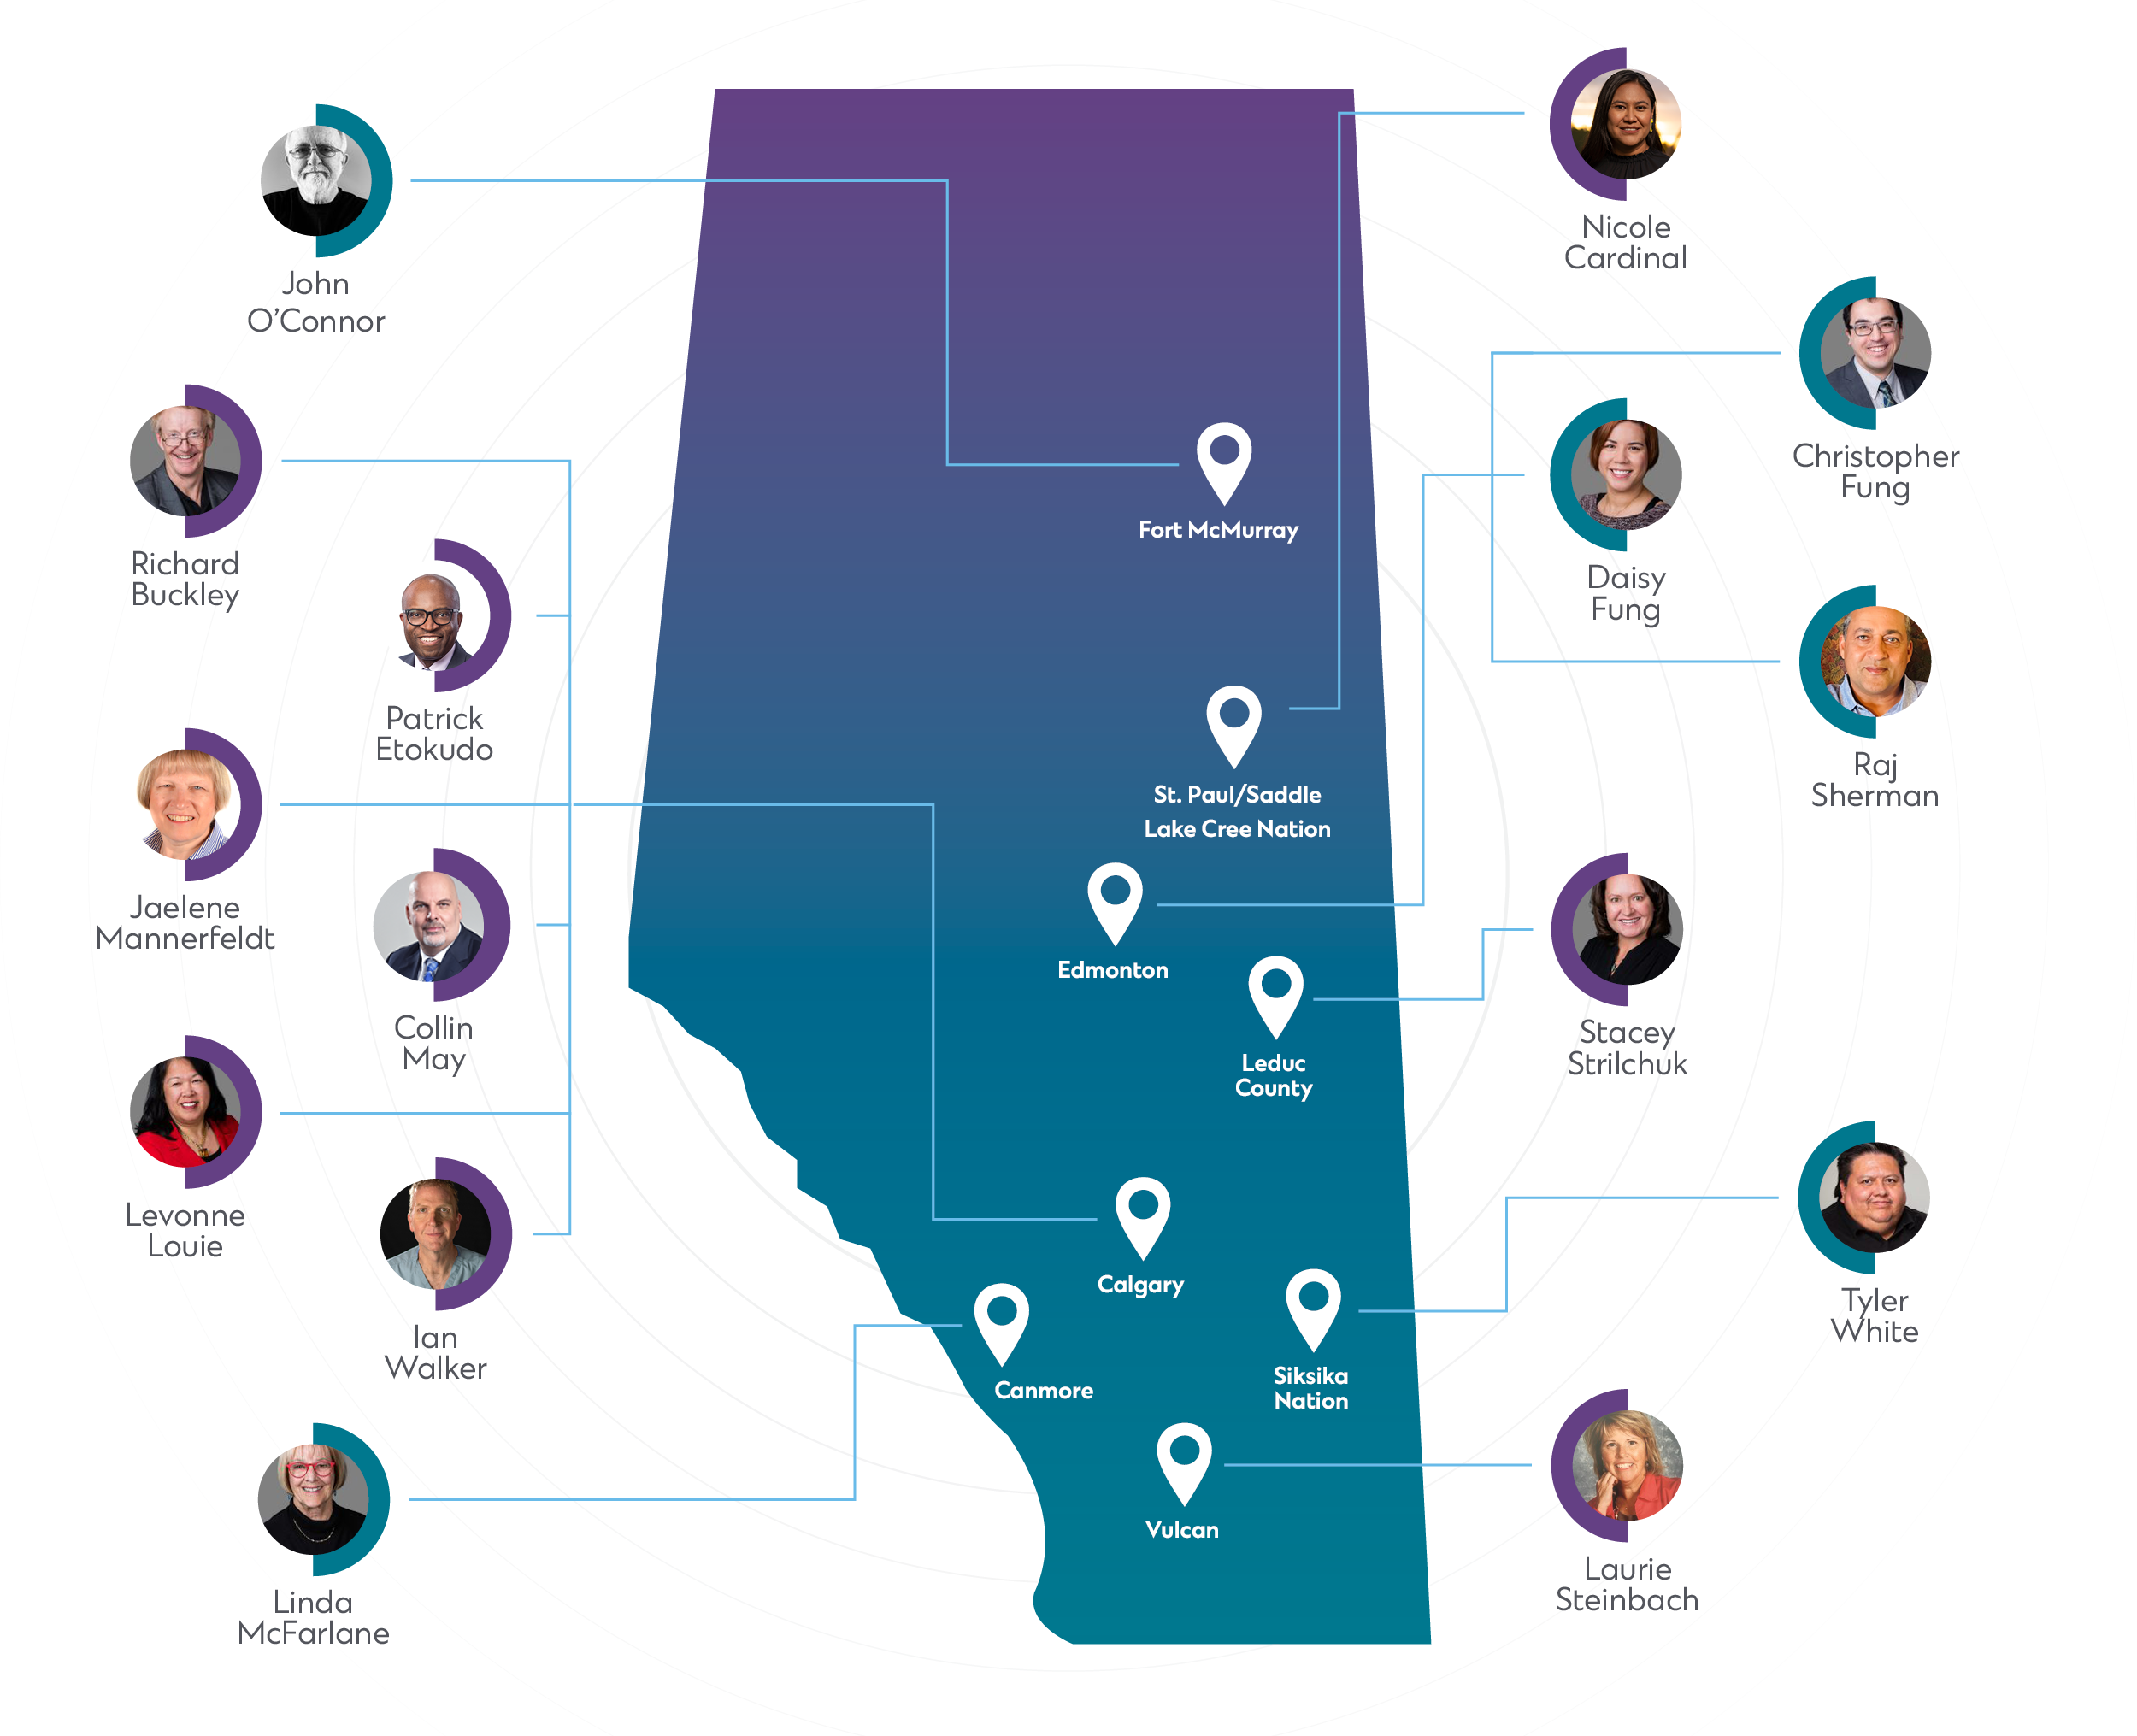 A map of Alberta with location markers in Fort McMurray, Edmonton, Leduc Country, Calgary, Canmore, Siksika Nation and Vulcan. Headshots of current CPSA councillors are linked to each different community.